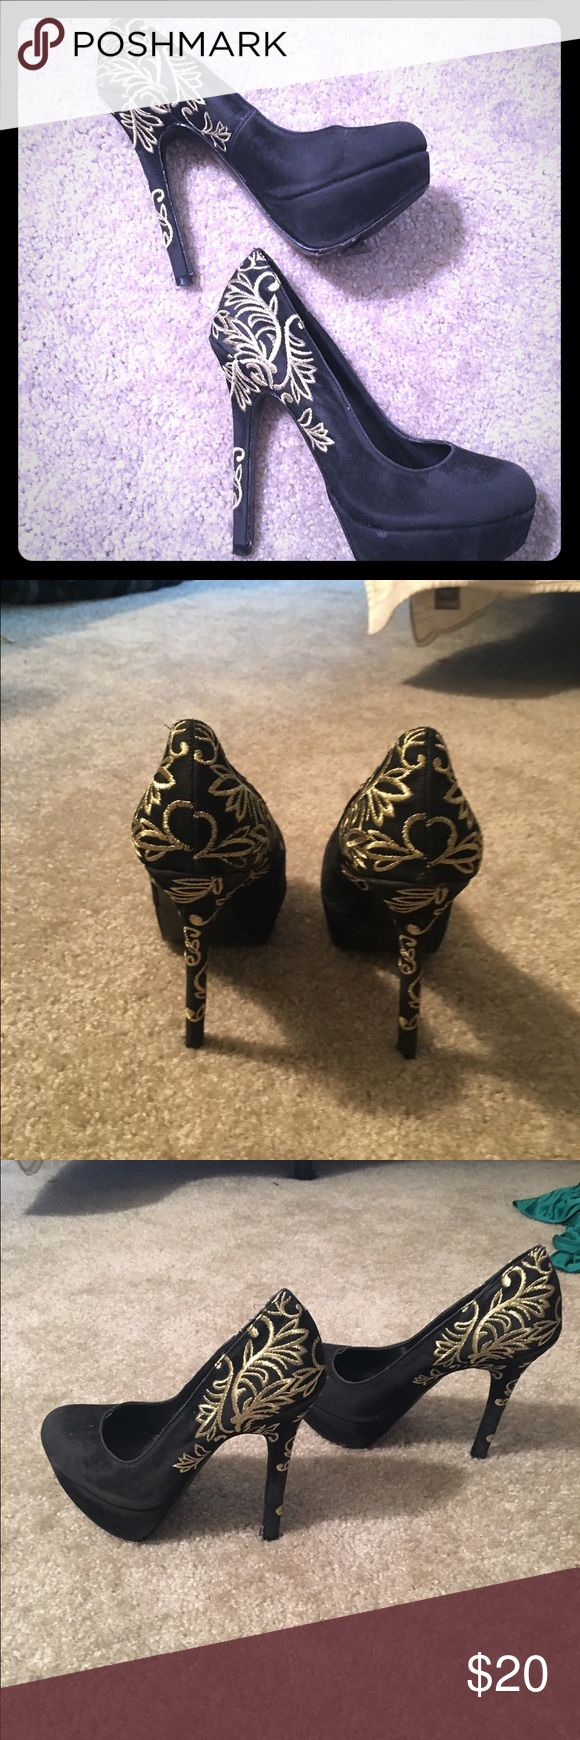 "Colin Stuart ""angel wings"" heels Colin Stuart ""angel wings"" heels - beautiful black heels with gold scroll on back heels.   Heels are 5inches inclusive of Platform at 1 1/2inches Colin Stuart Shoes Heels"